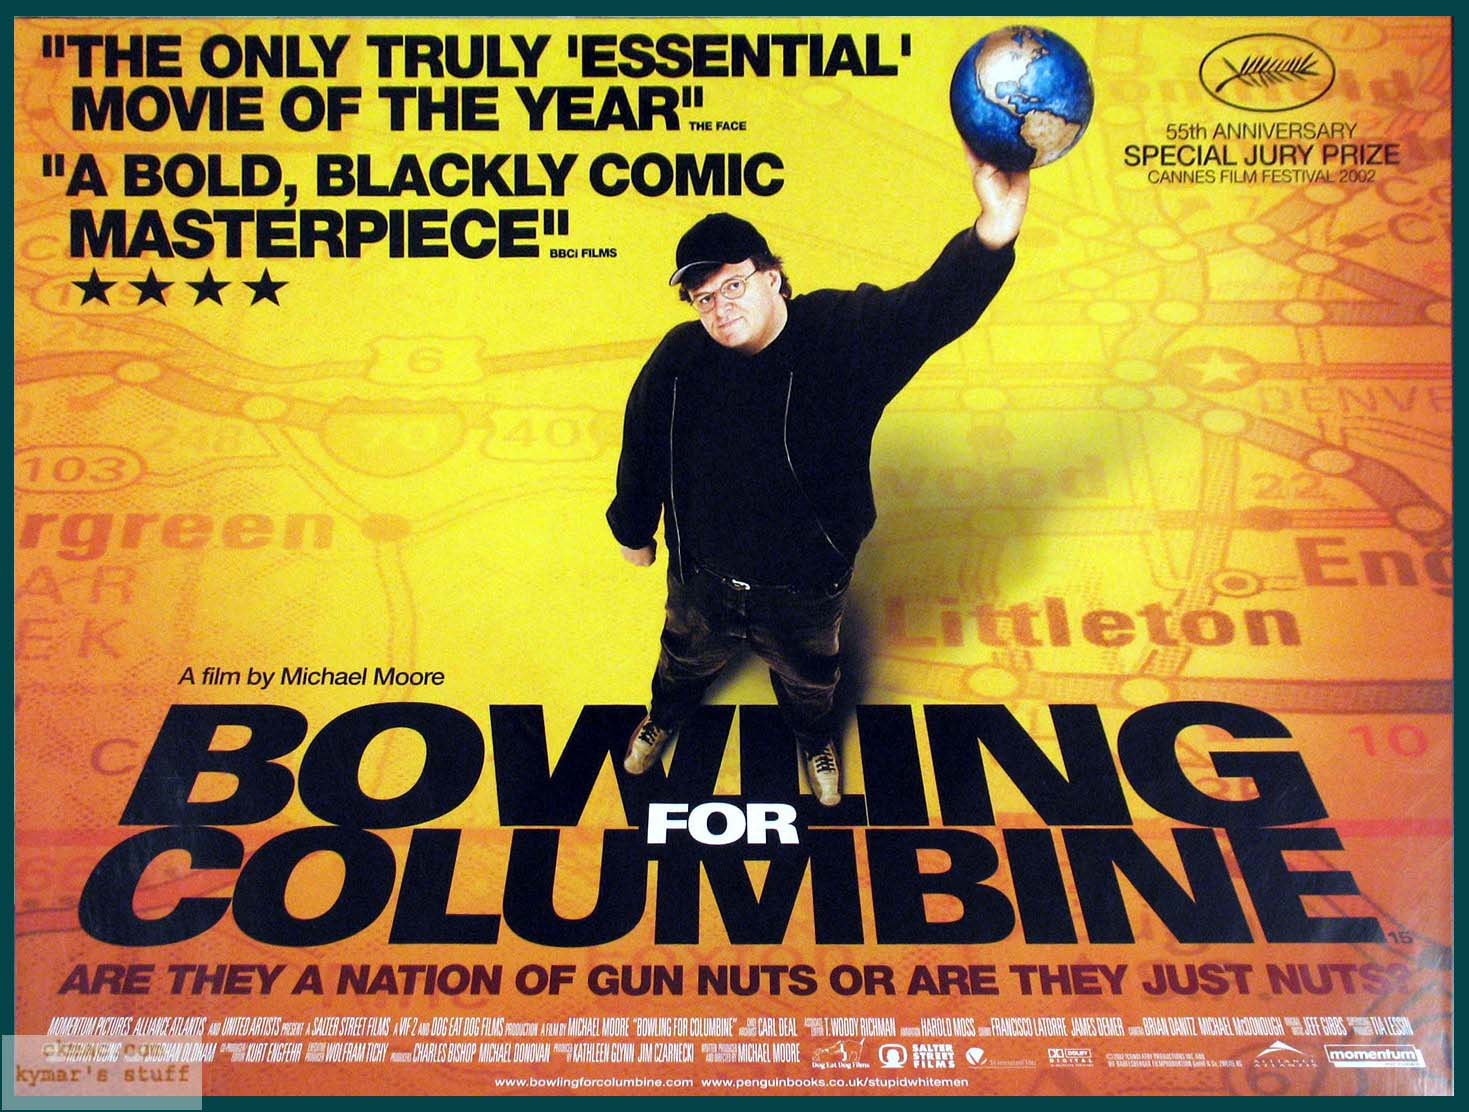 Bowling for columbine opinion essay